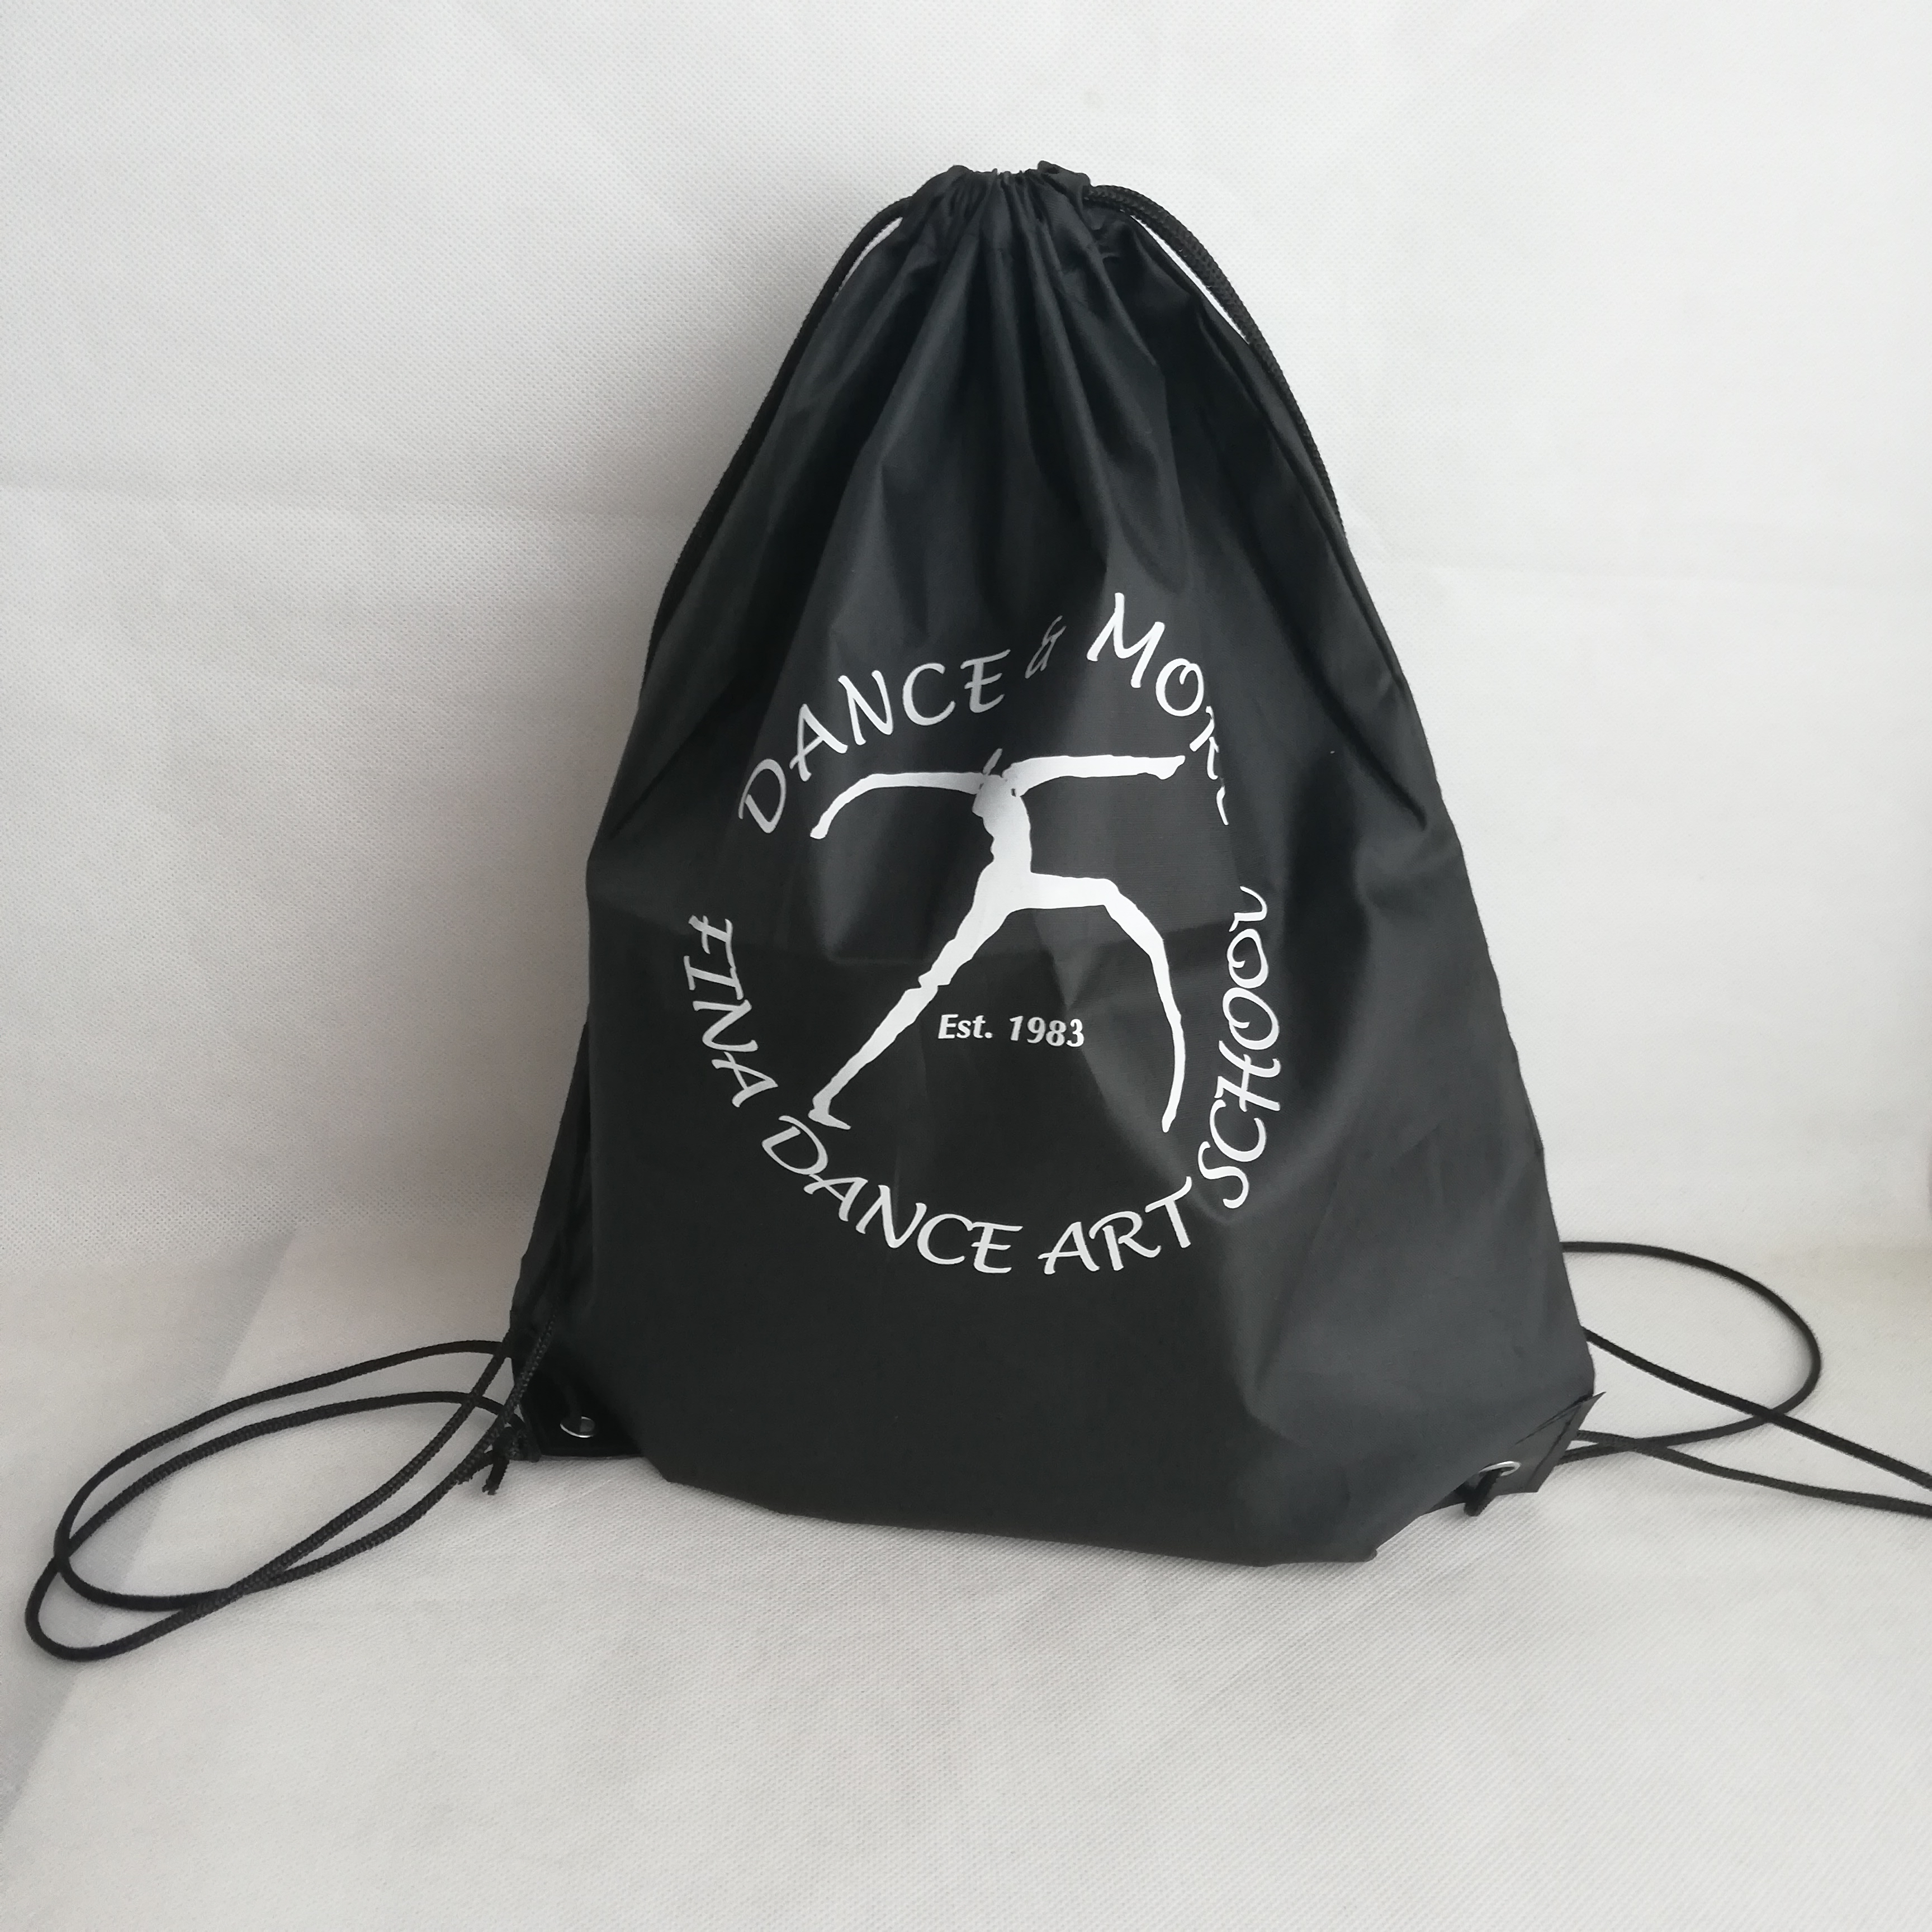 500pcs lot Nylon Drawstring Backpack Custom Your Logo for a Promotional Give Away Outdoor Sports 210D